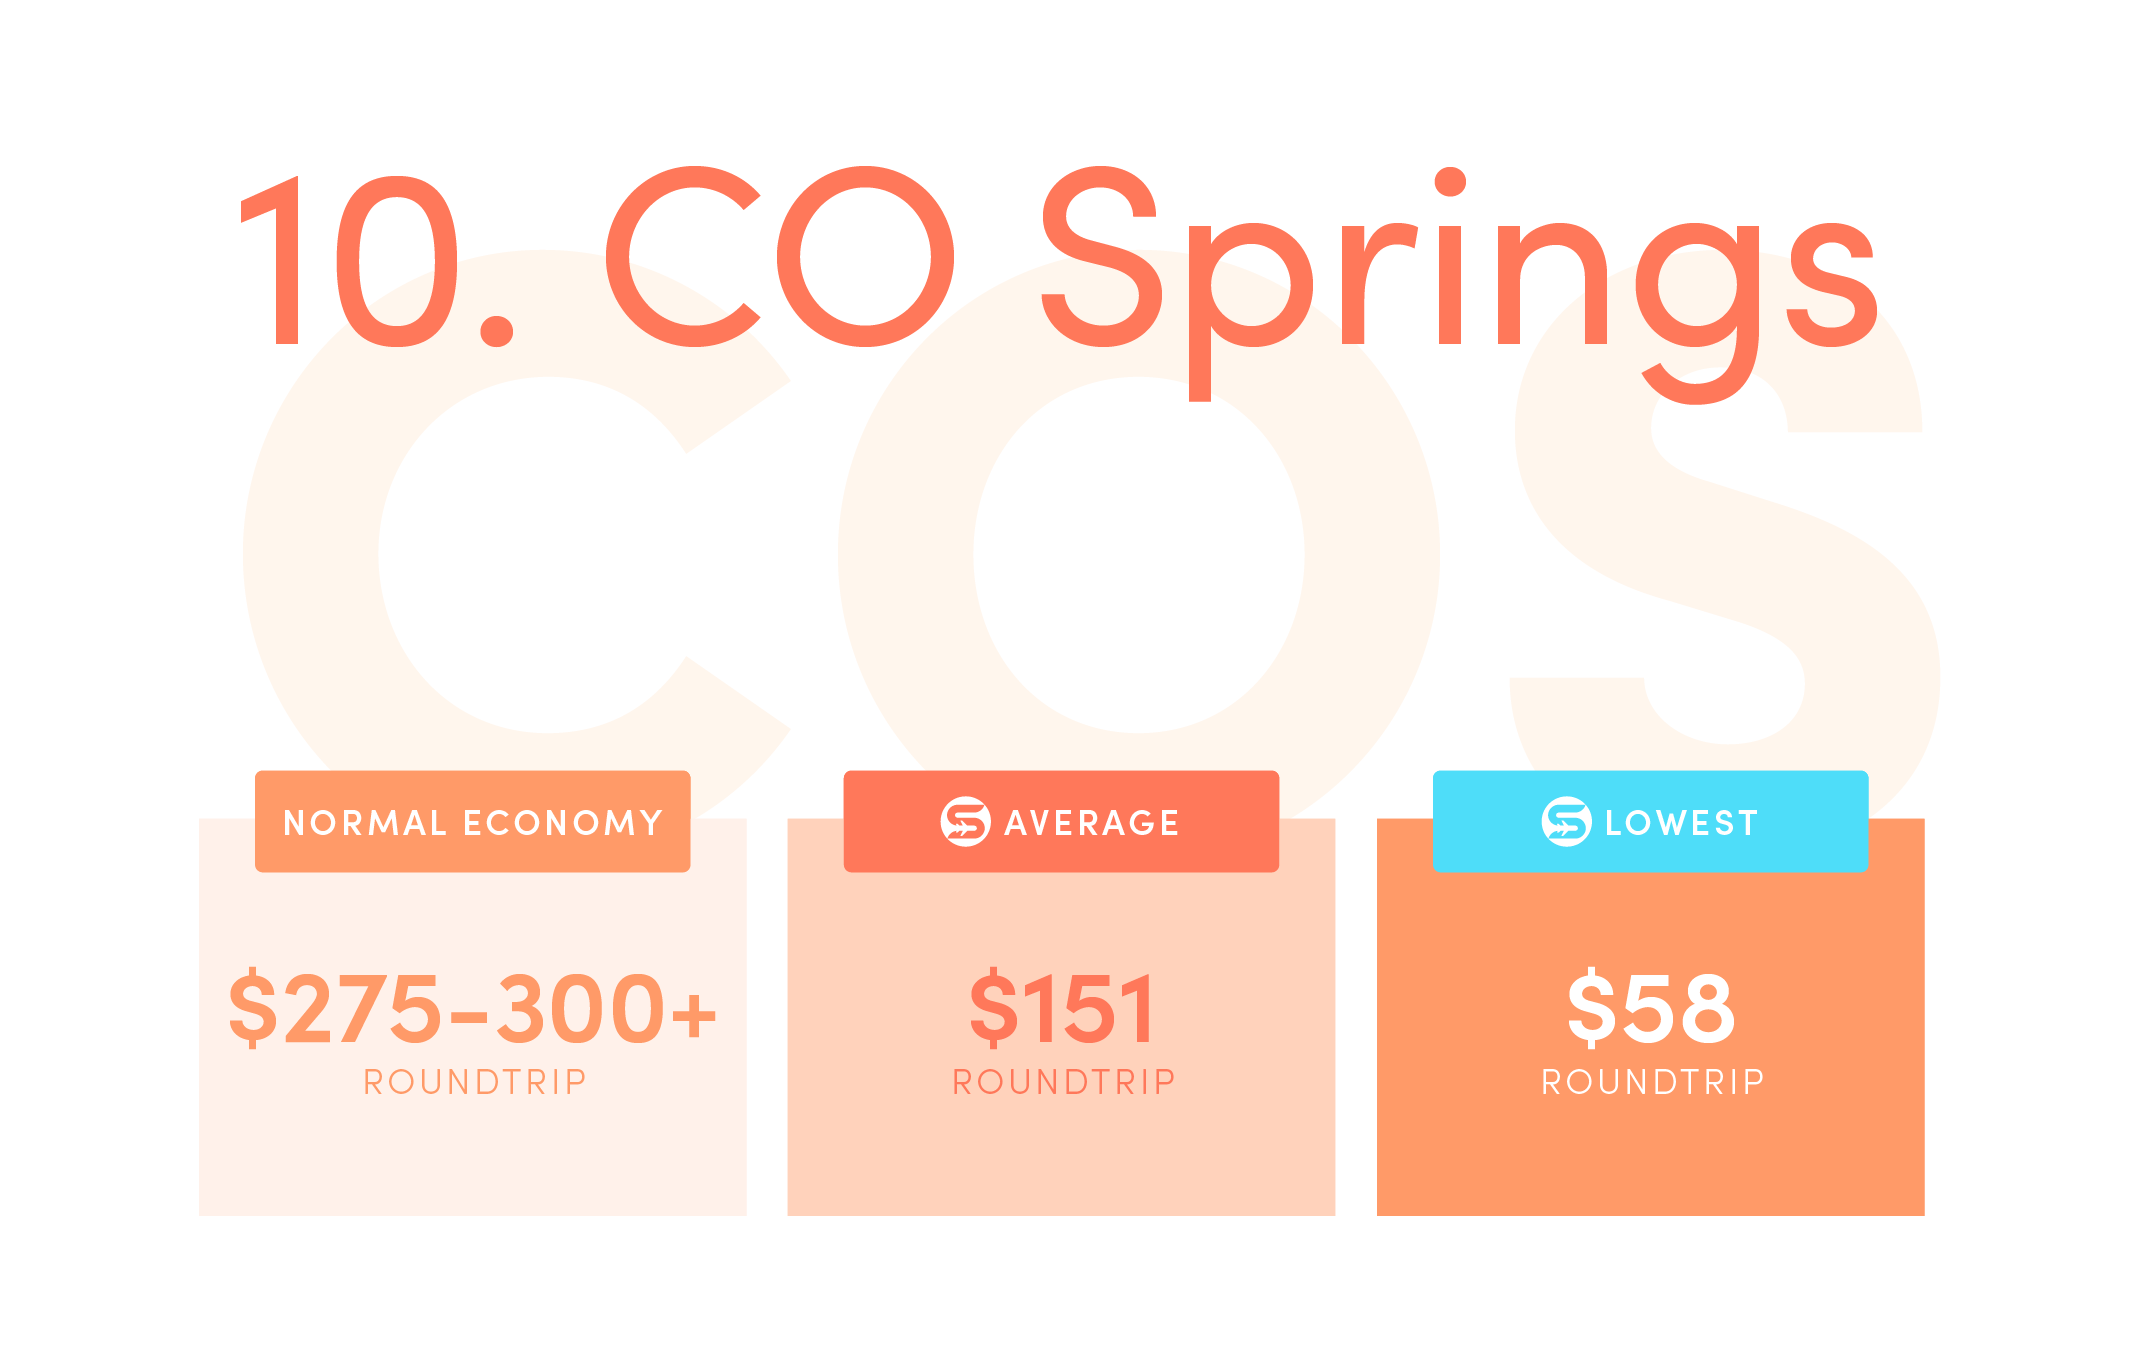 Colorado Springs (COS).Normal economy price from the US: $275-$300+ roundtrip.Average Scott's Cheap Flights economy price: $151 roundtrip.Lowest Scott's Cheap Flights price in 2021: $58 roundtrip.